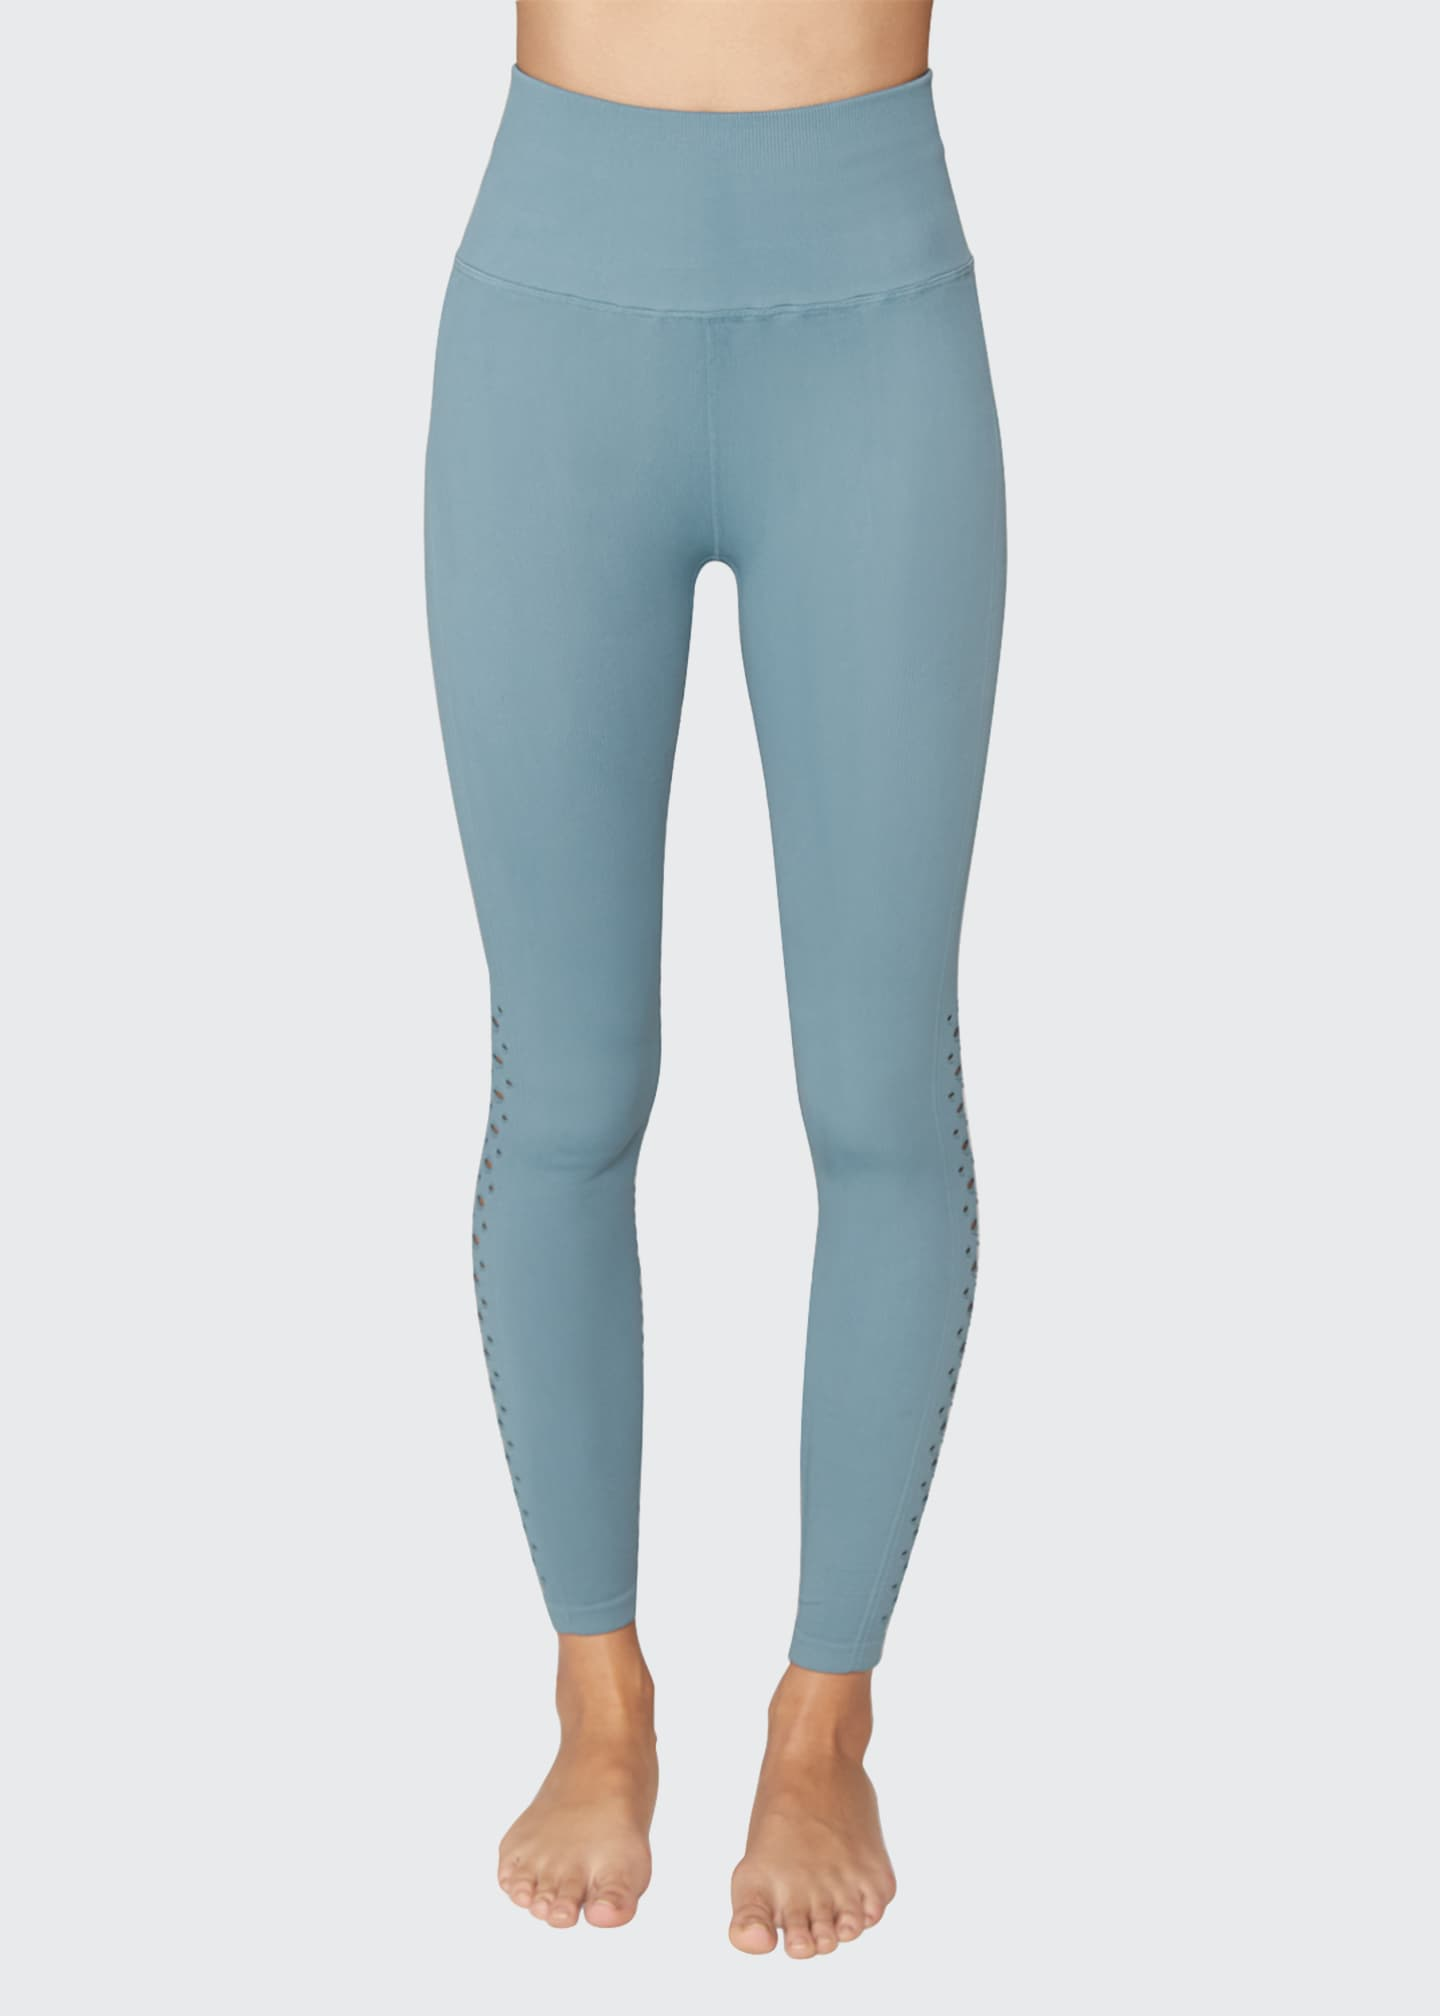 Image 2 of 3: Self-Love Leggings